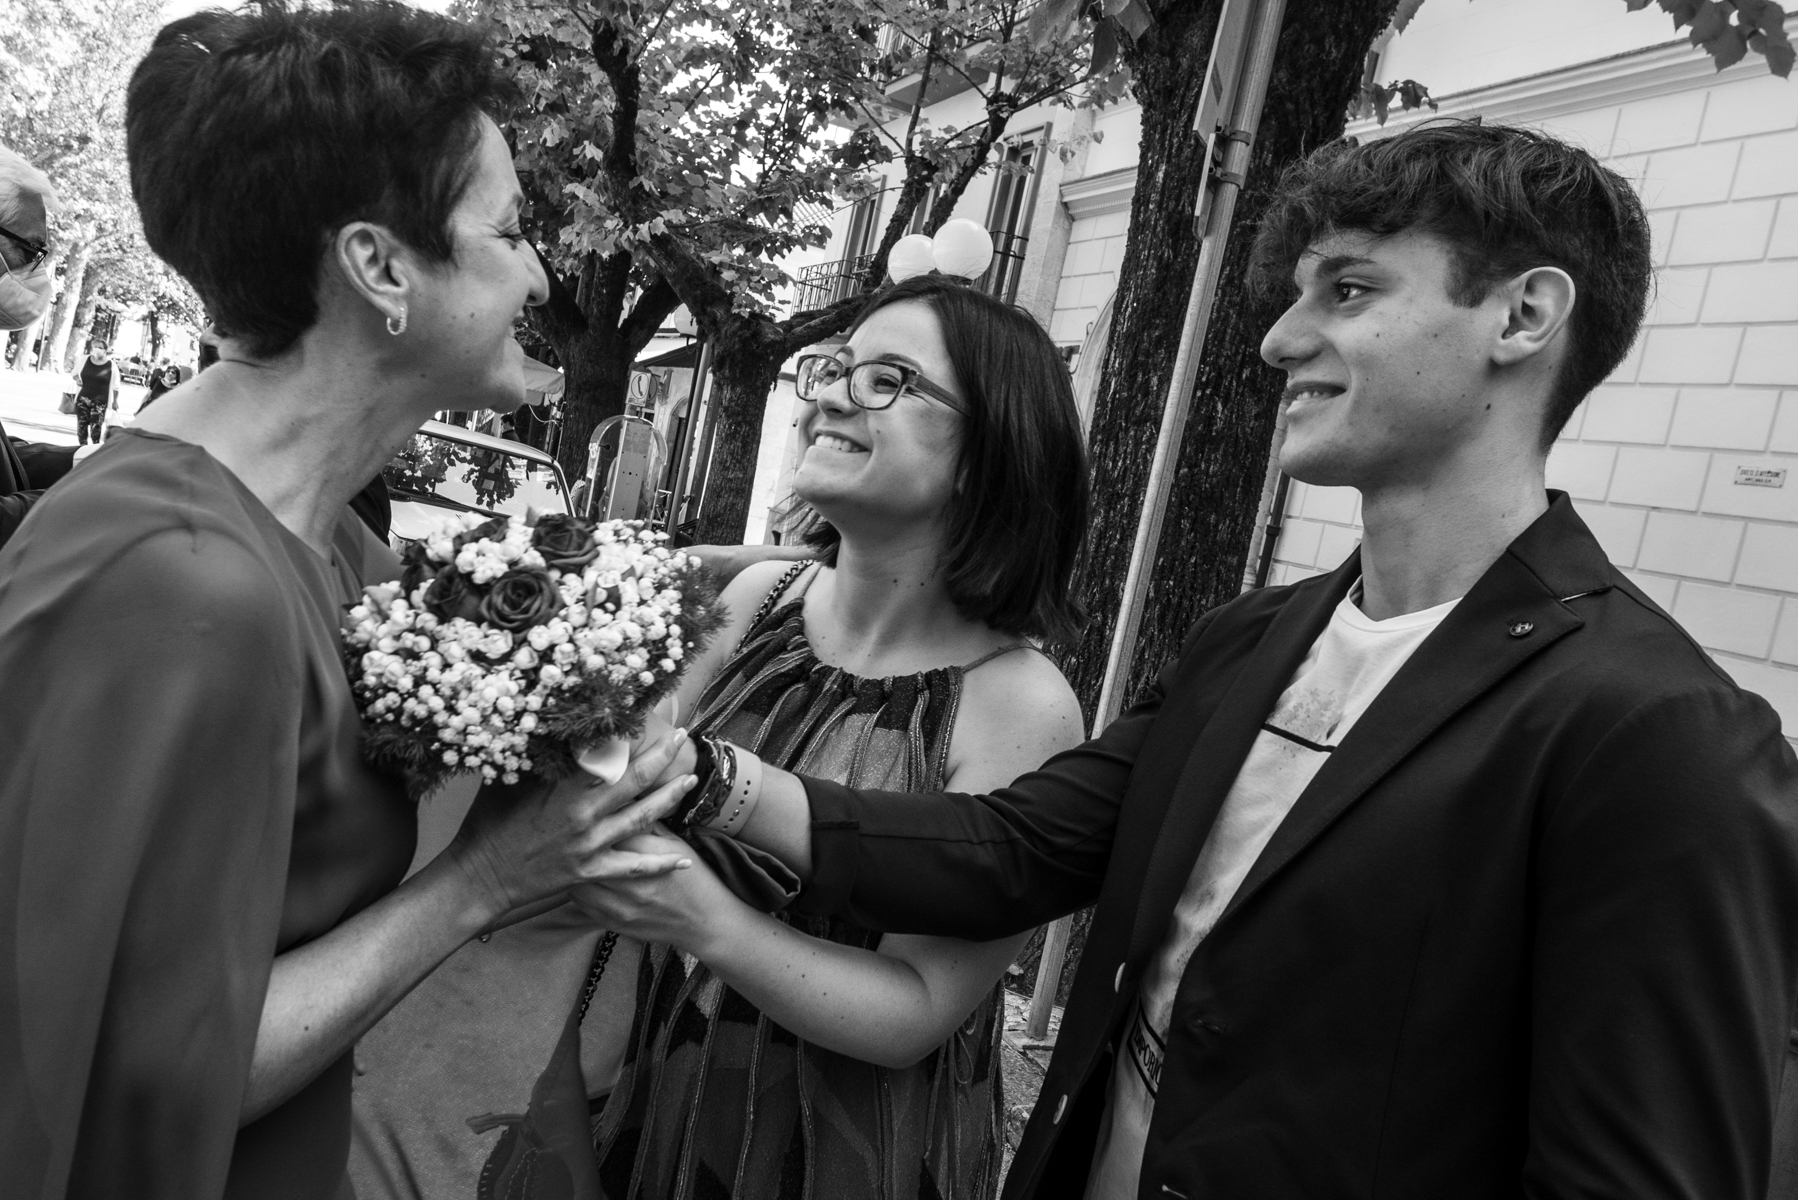 Town Hall Elopement Photo from Tagliacozzo - L'Aquila - Italy | an important and also unusual moment in wedding ceremonies, the children of the bride